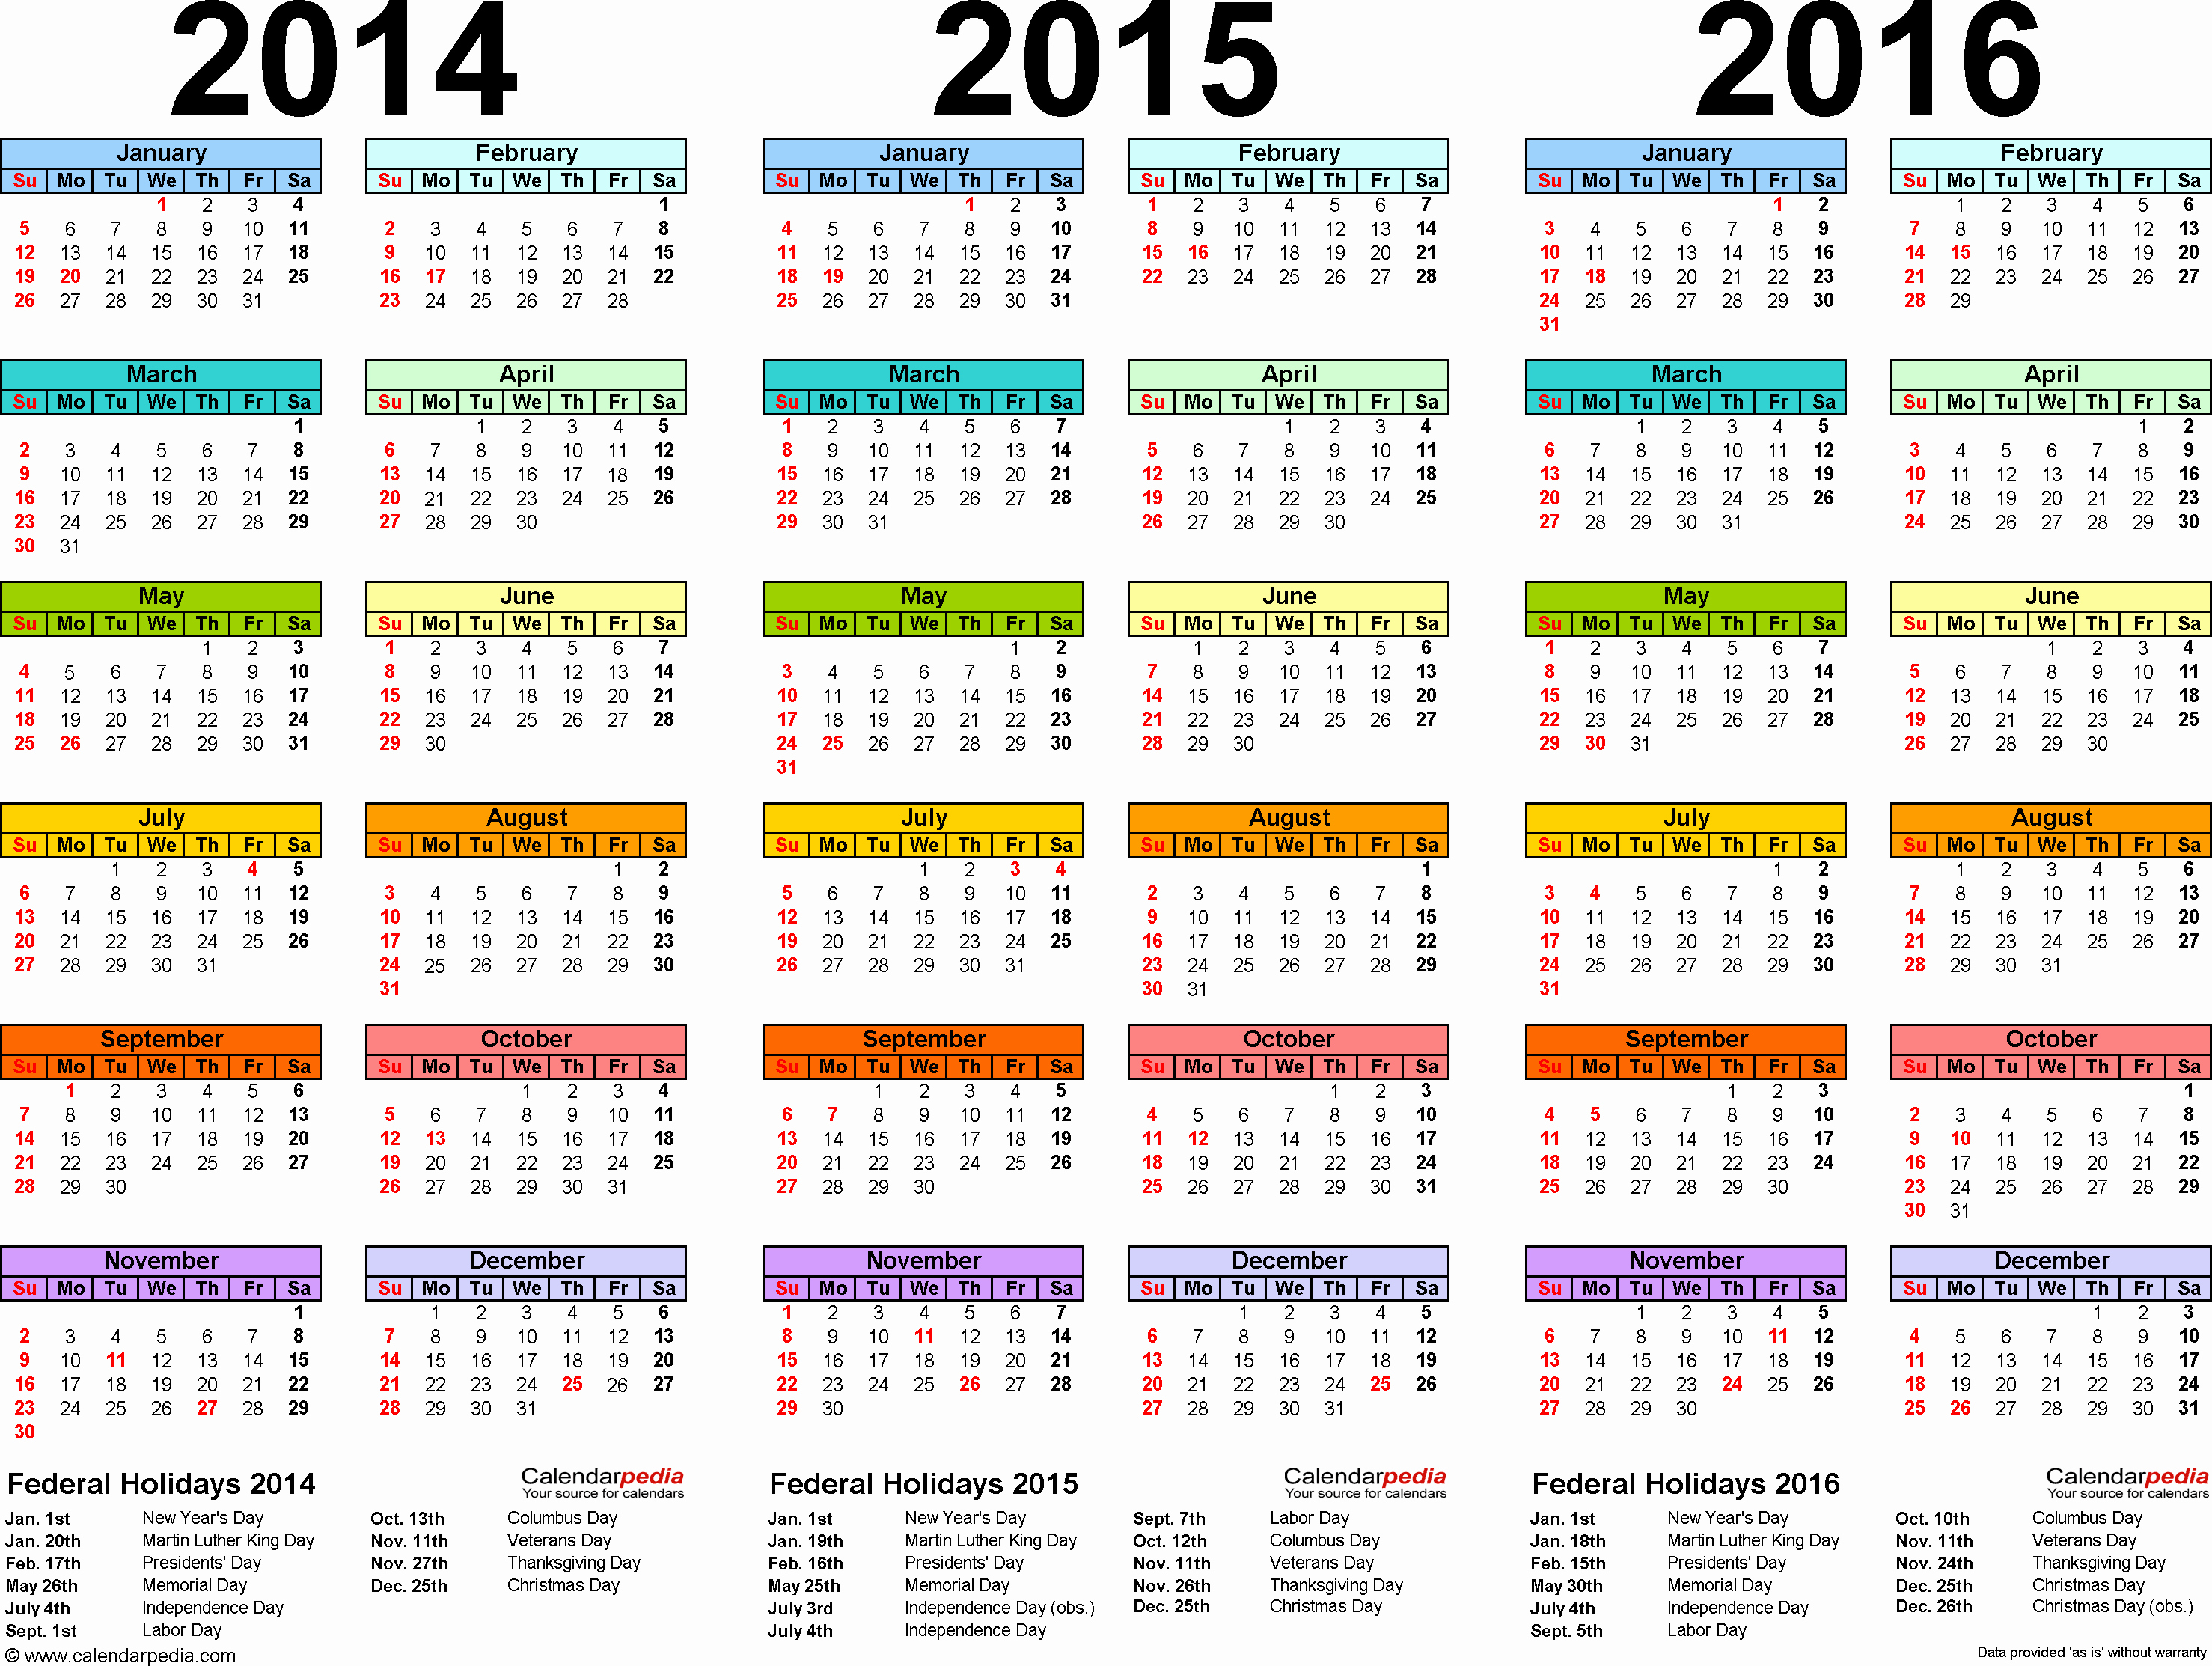 Calendar 2016-17 Template Fresh 2016 17 School Year Calendar Template